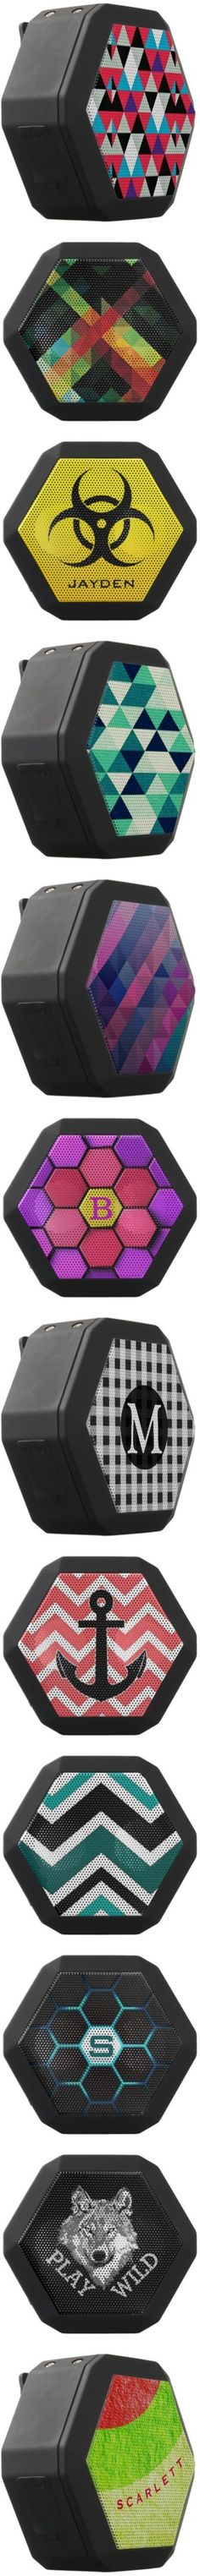 Boombot Rex Bluetooth Speaker by shabzdesigns on Polyvore featuring speaker